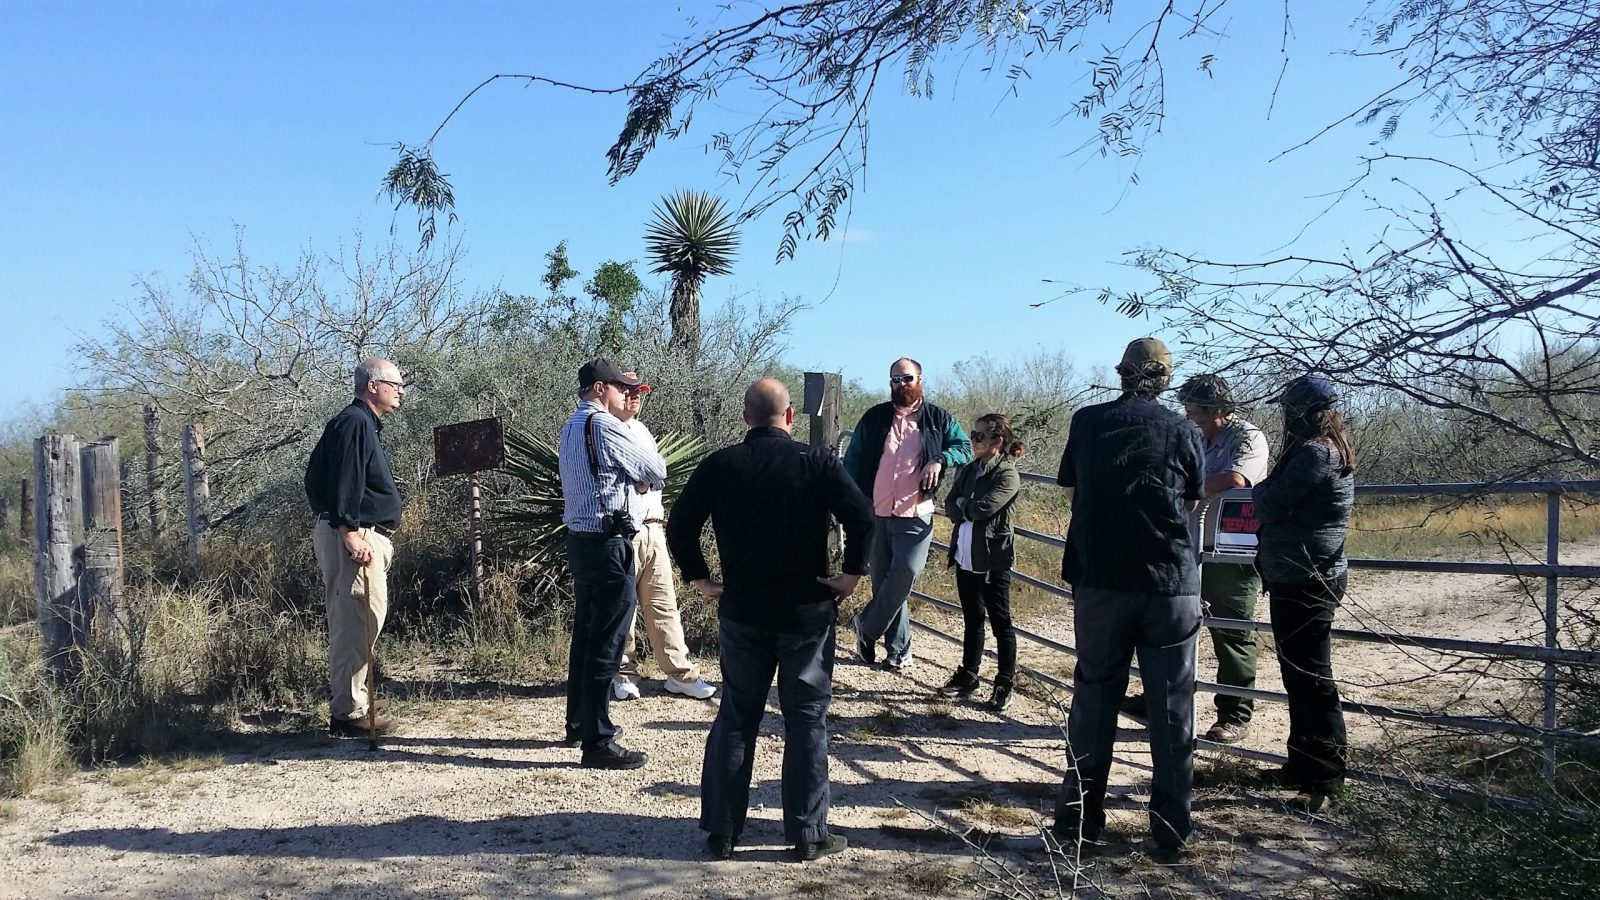 Discussion with project stakeholders on Palmito Ranch battlefield site